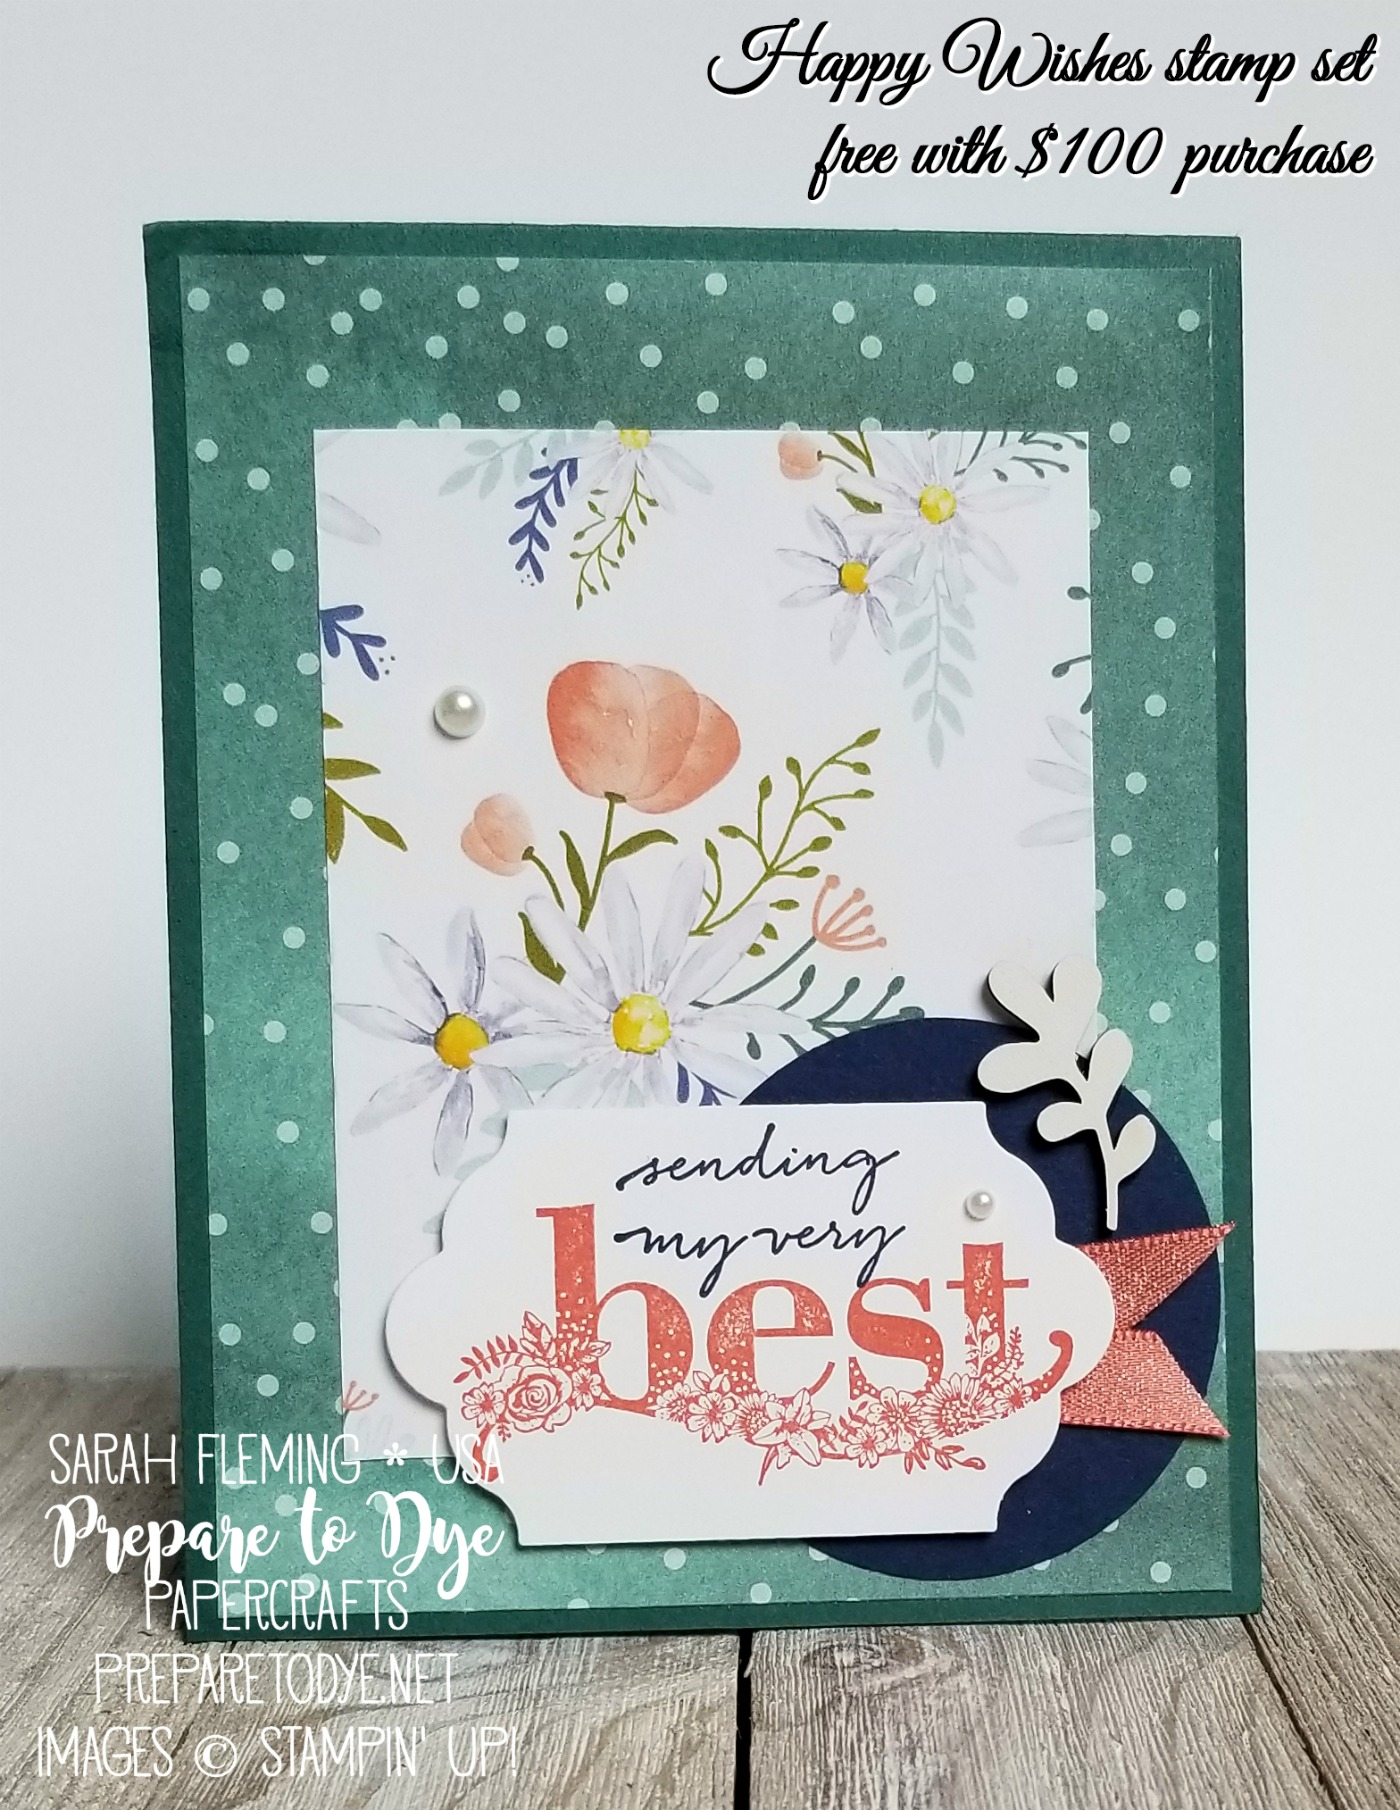 Stampin' Up! Happy Wishes stamp set -- free with $100 order during Sale-A-Bration -- with Delightful Daisy paper - handmade hello card - Sarah Fleming - Prepare to Dye Papercrafts